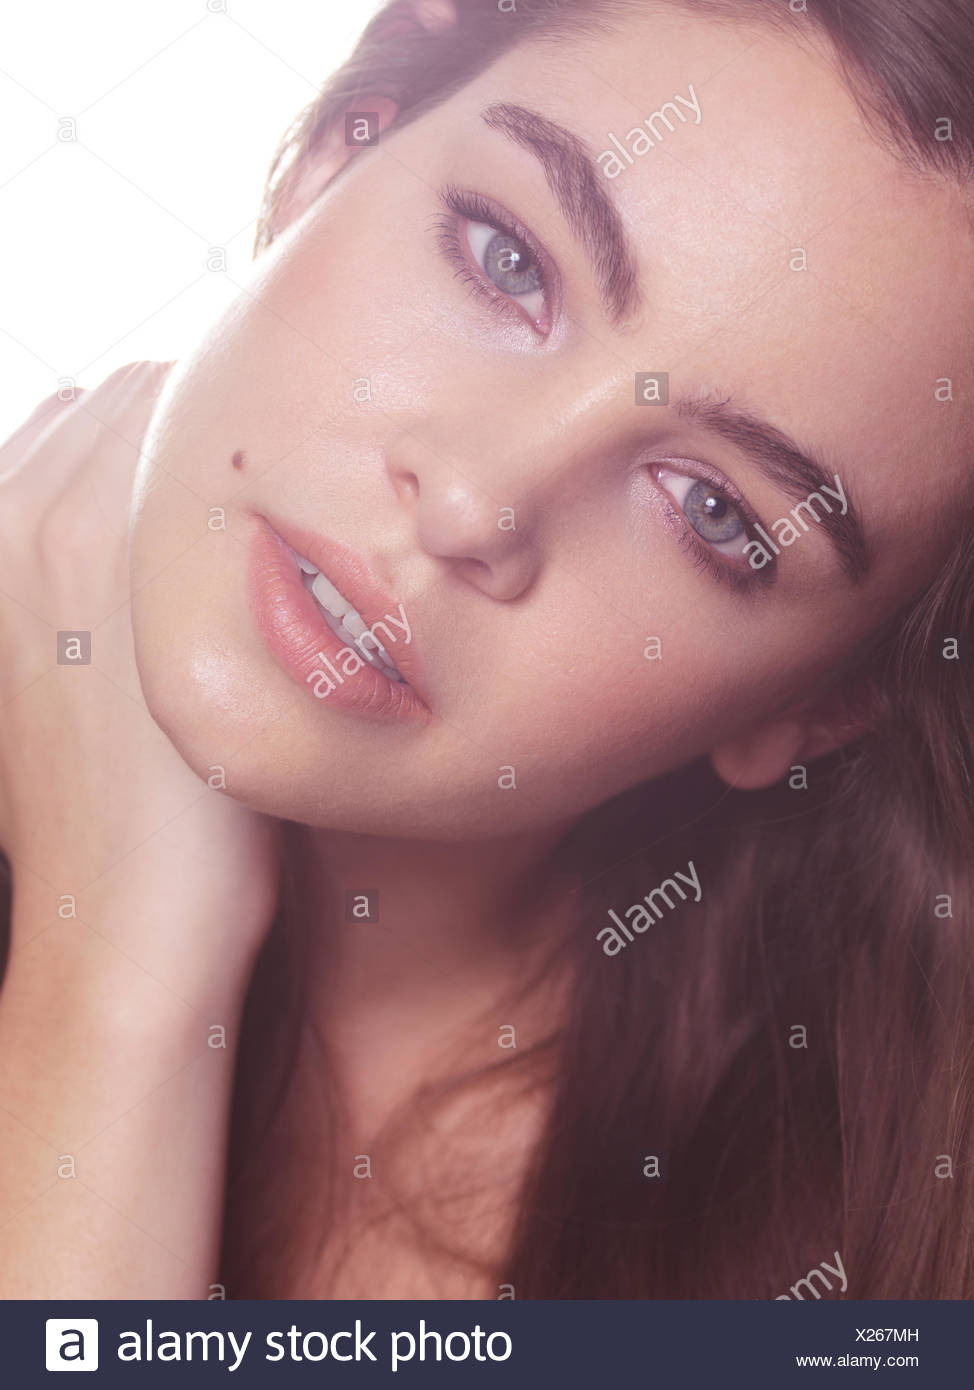 Woman with long hair and bushy eyebrows in soft light - Stock Image